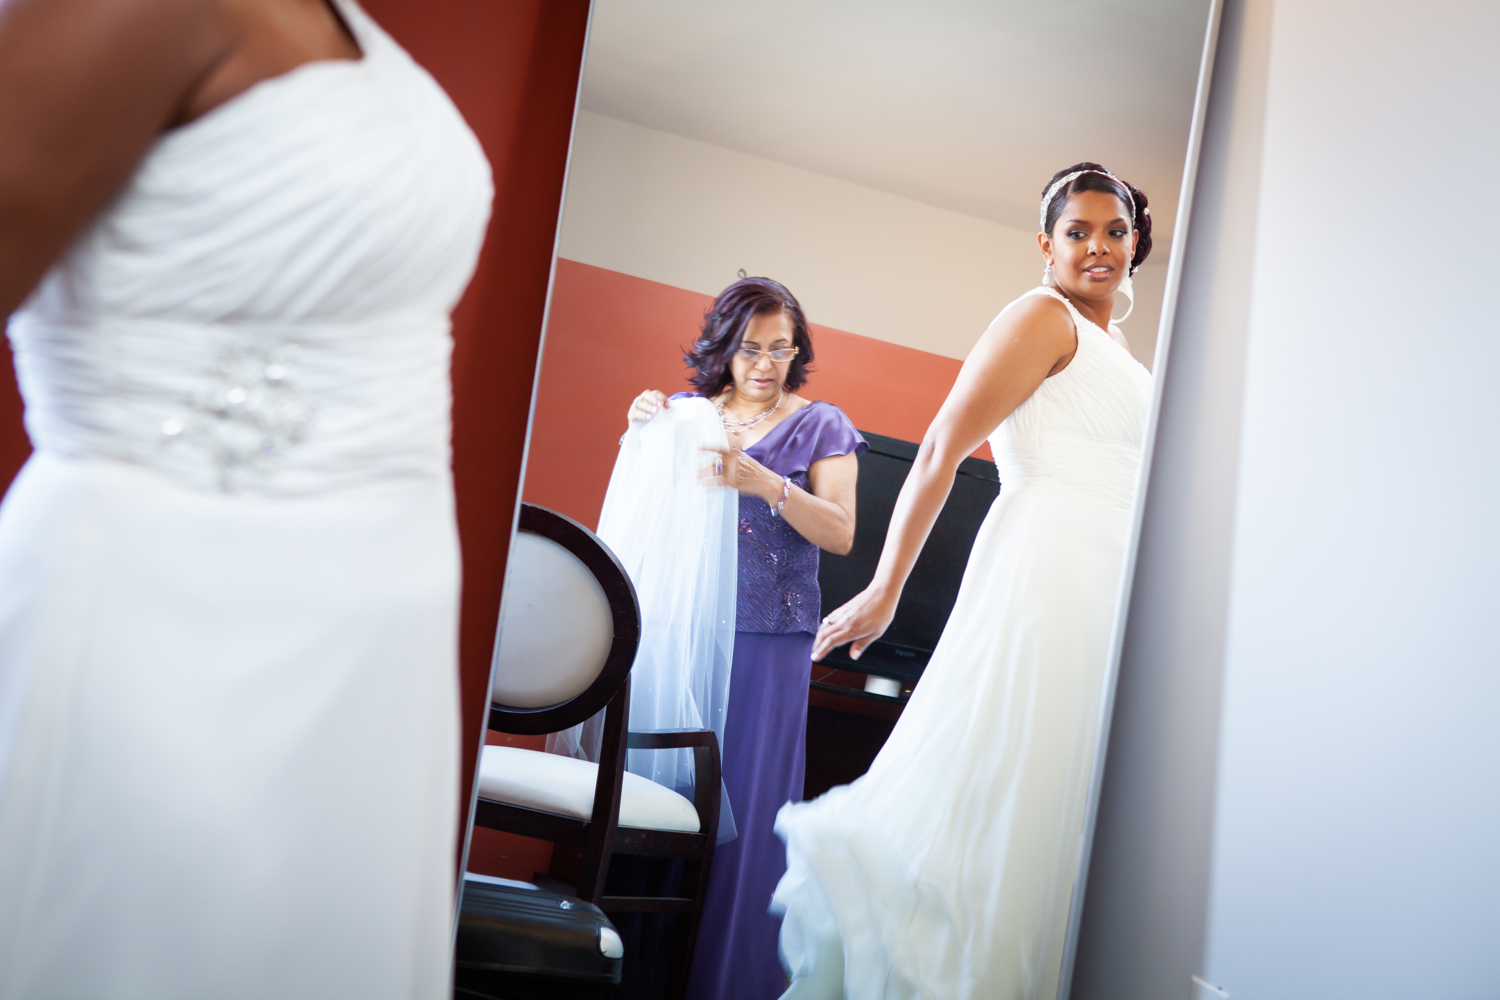 Bride looking at reflection of white dress in mirror